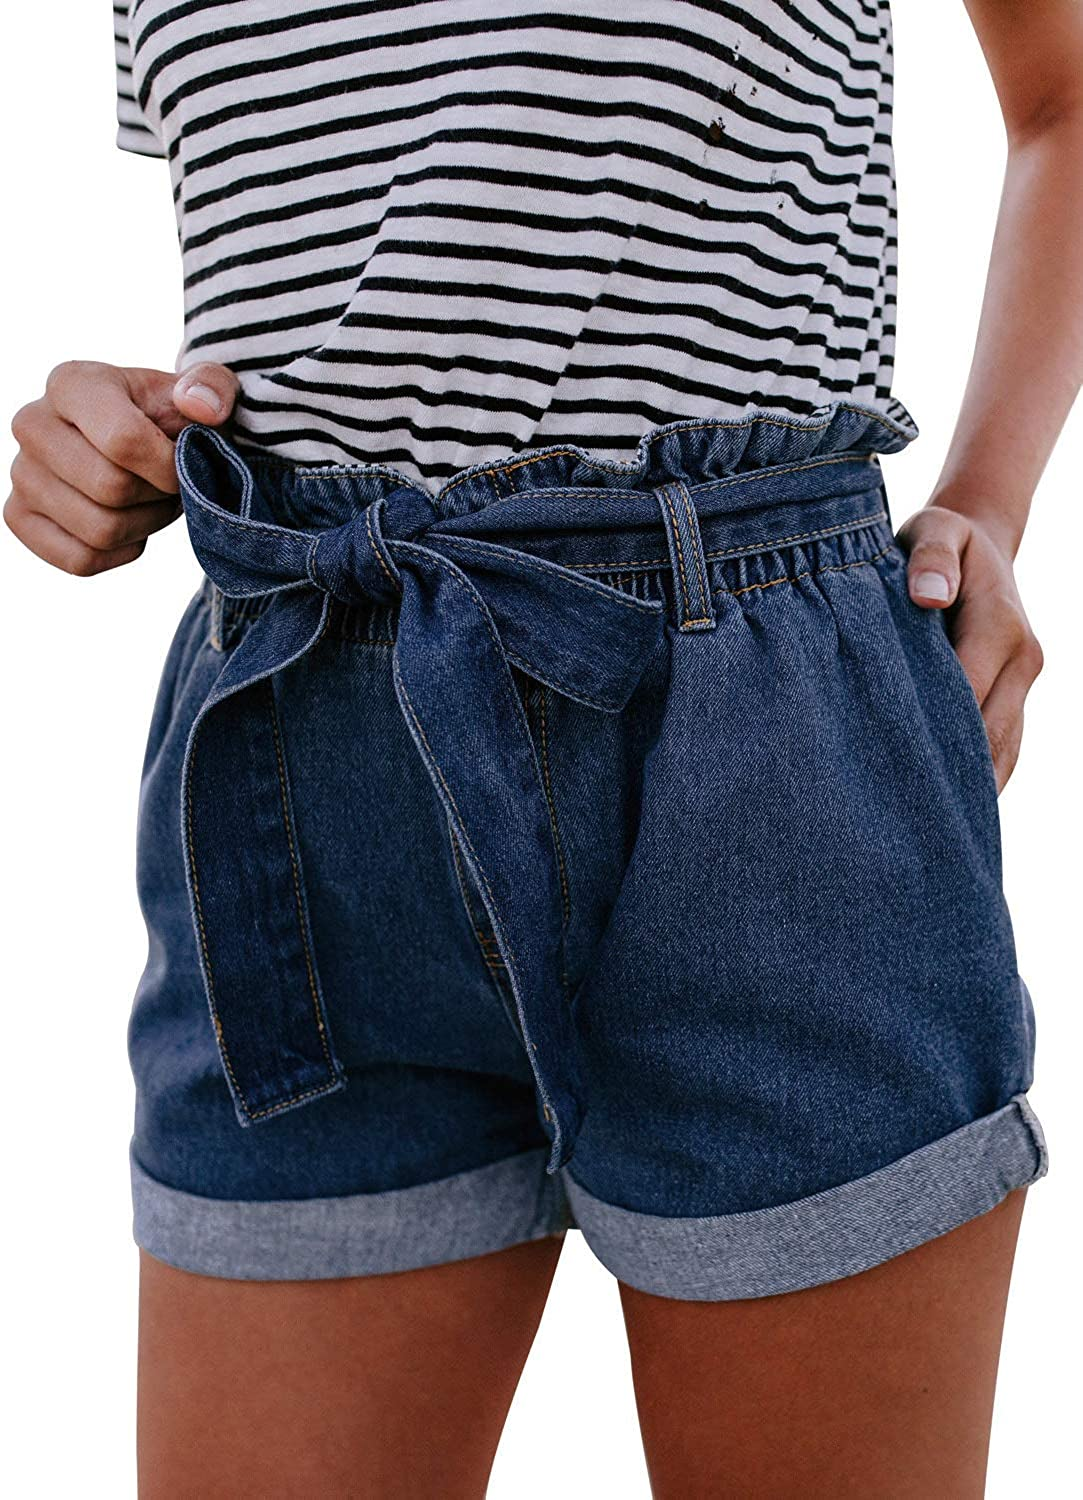 Details about  /Women High Waisted Jeans Shorts Ripped Destroyed Denim Pants Hot pants Summer